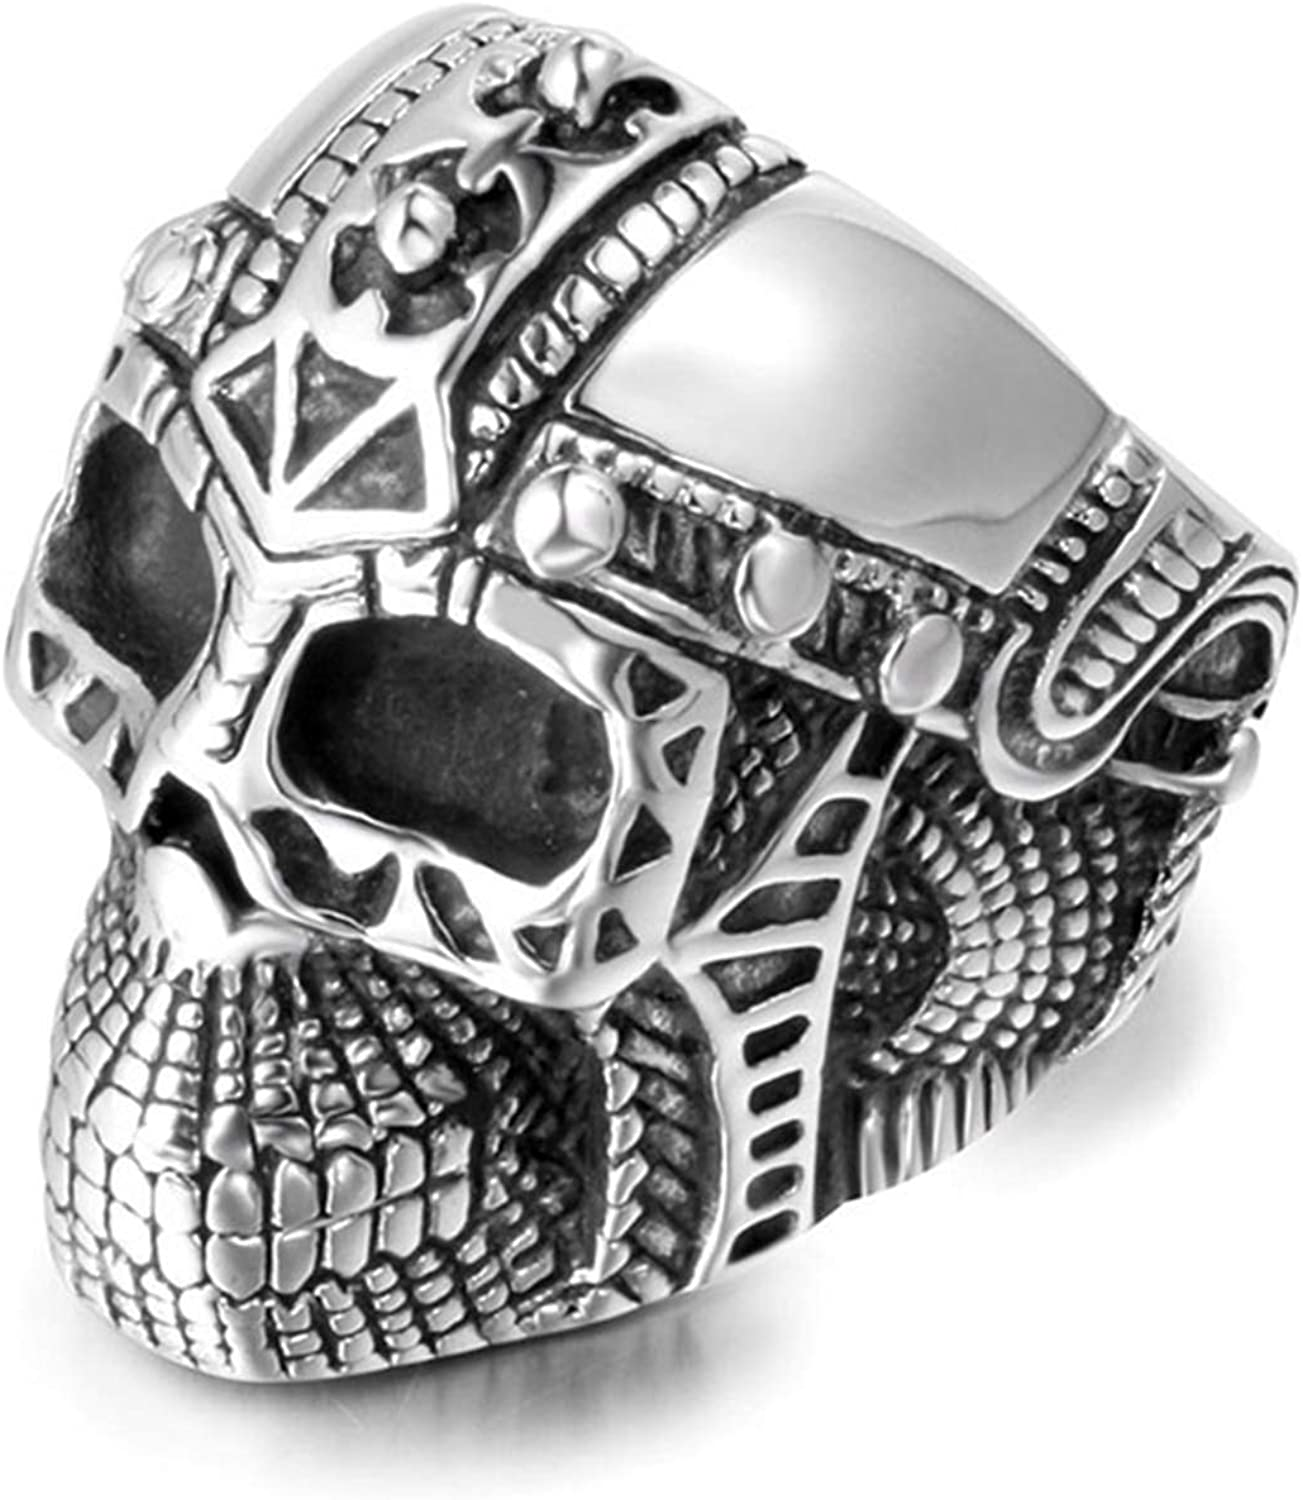 NA Stainless Steel Ring for Women and Men Rings Black Skull Silver Ring Size 7-12